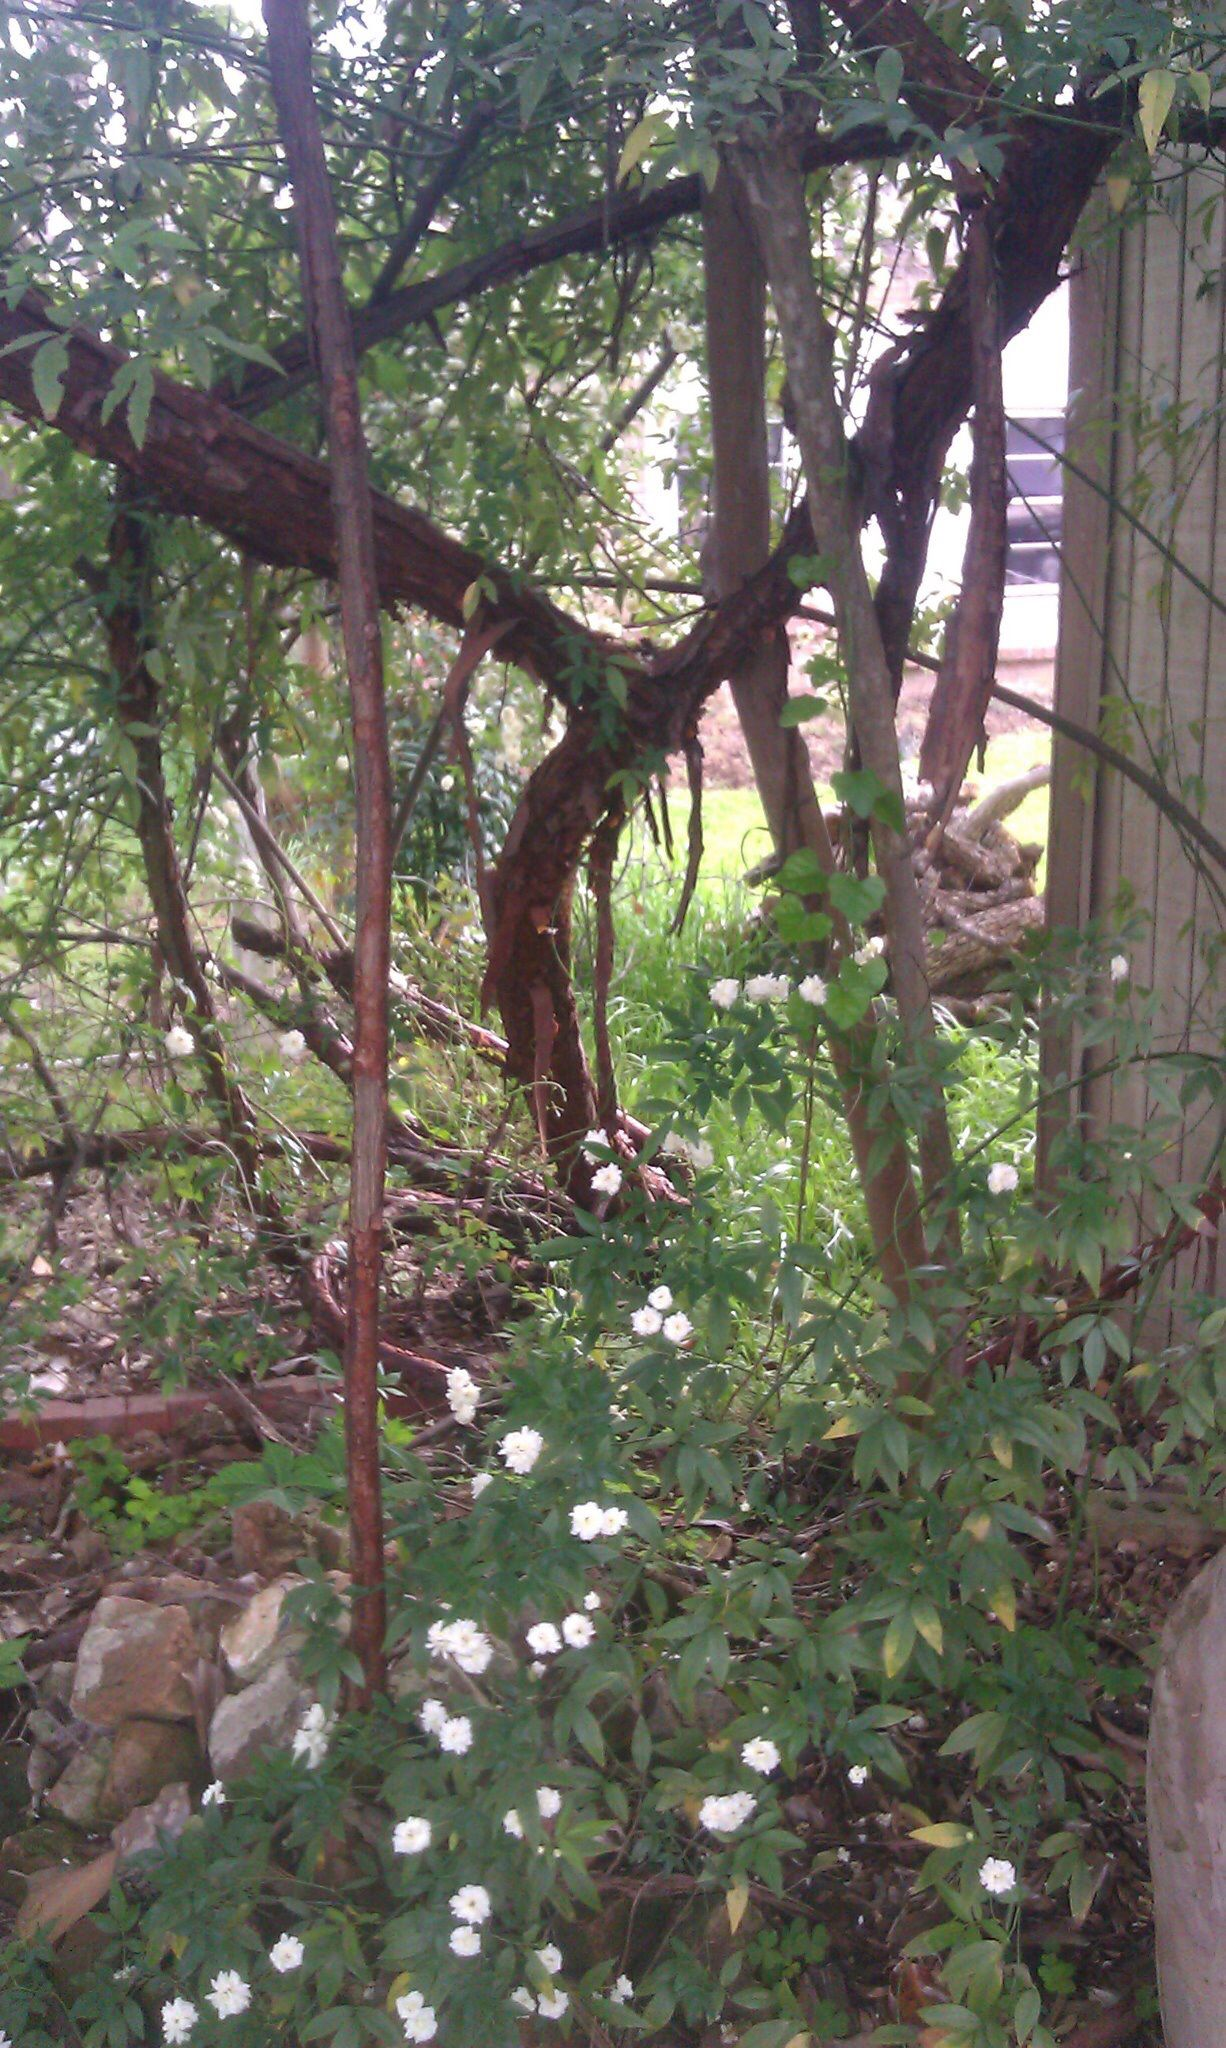 Rose that is over 125 yrs old. It has bark like a tree and